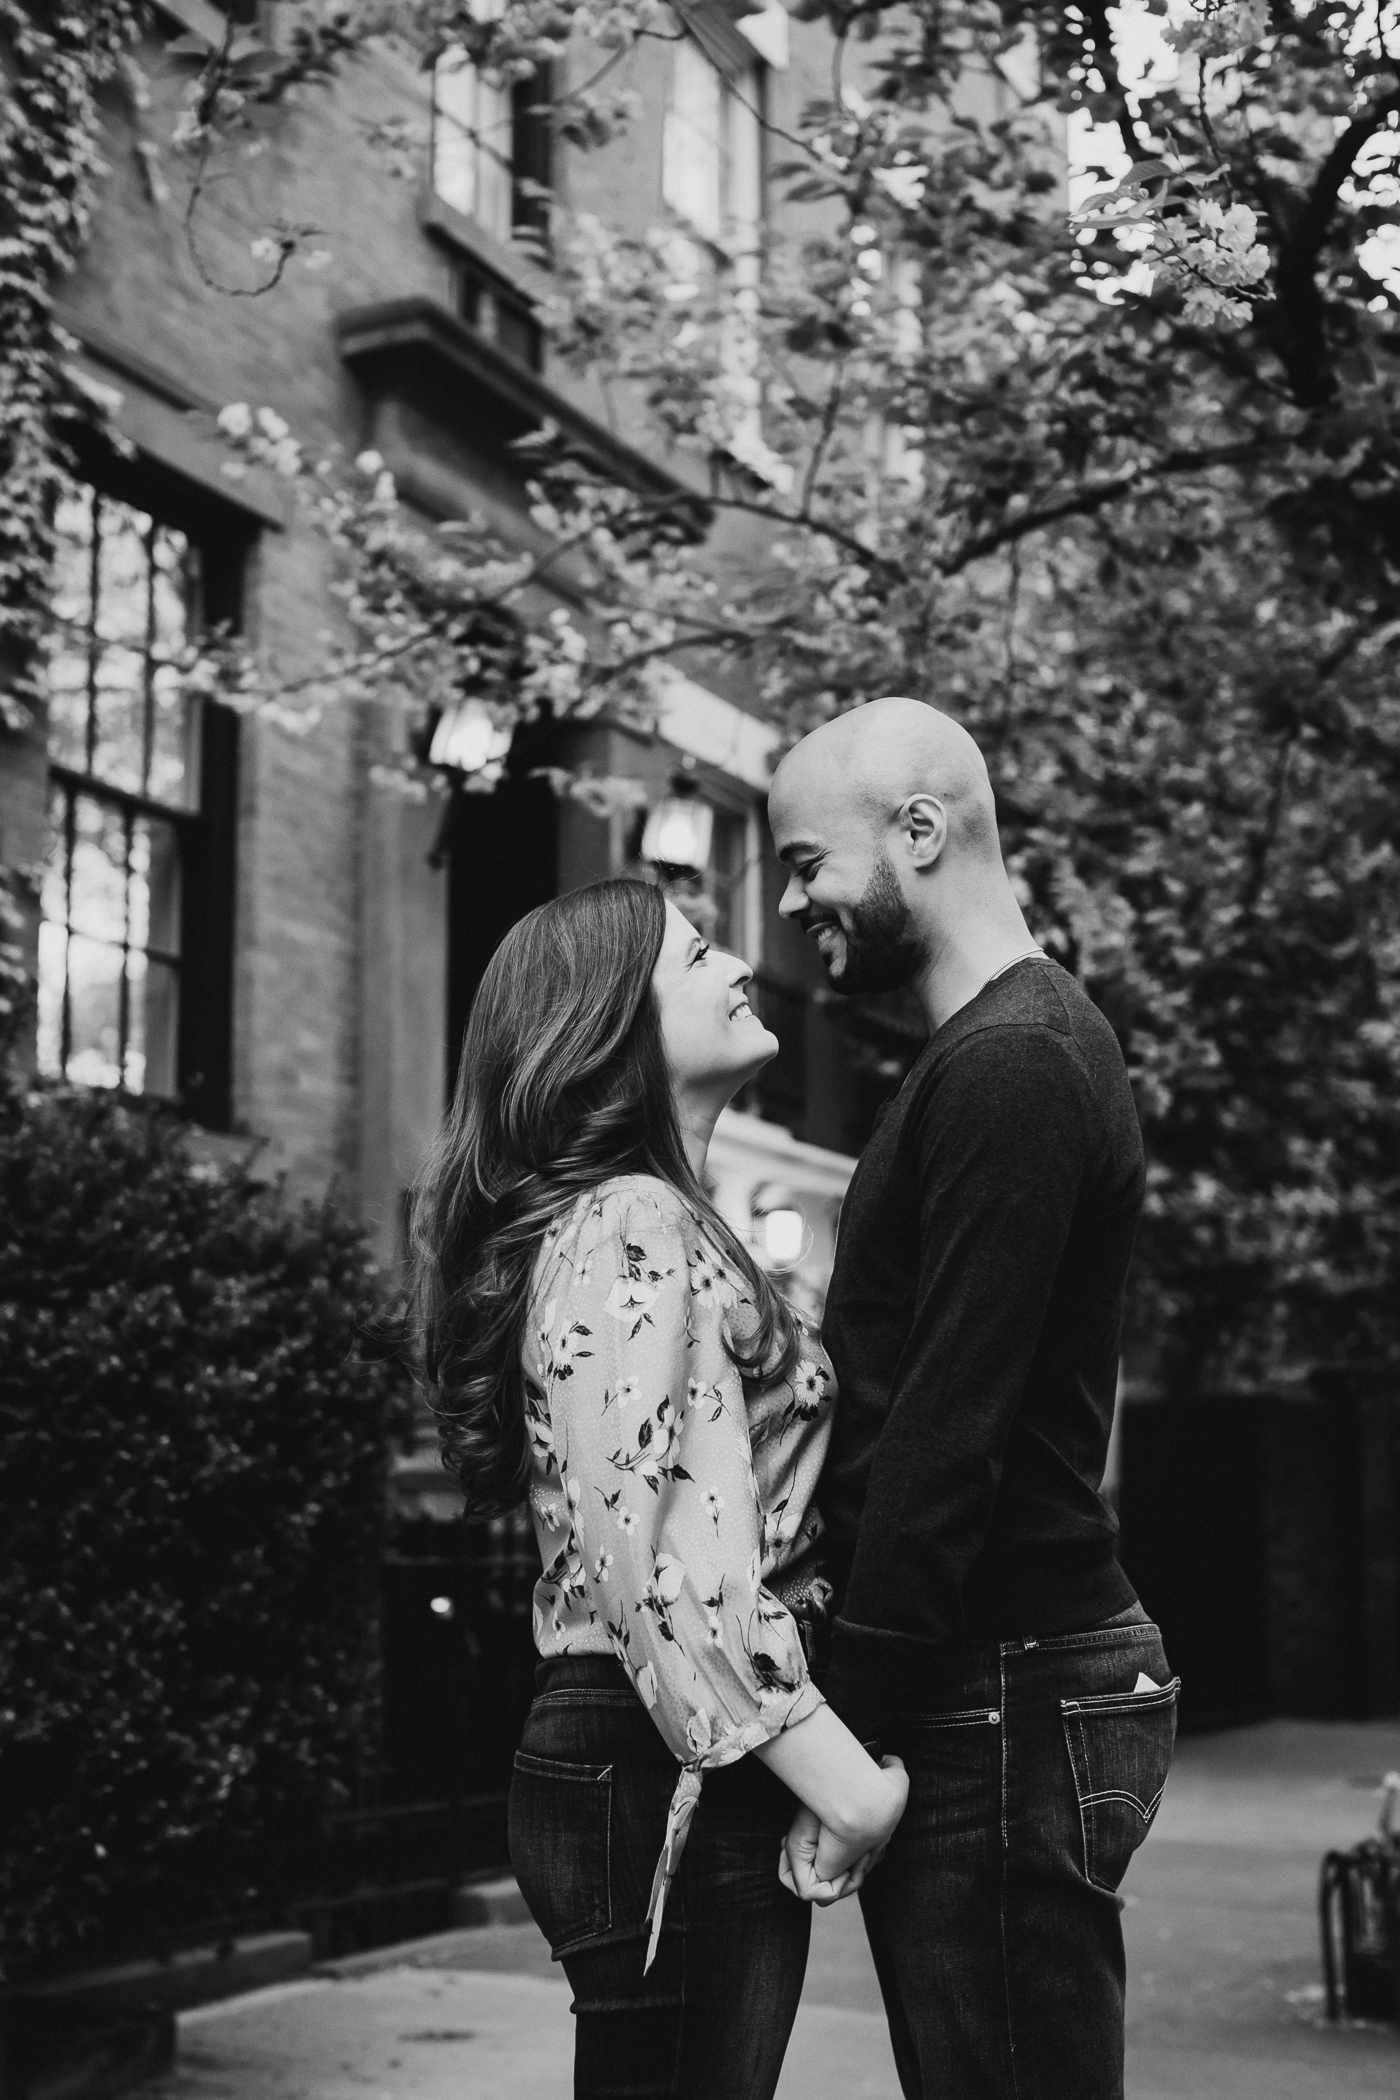 West-Village-Engagement-Photos-NYC-Wedding-Photographer-13.JPG